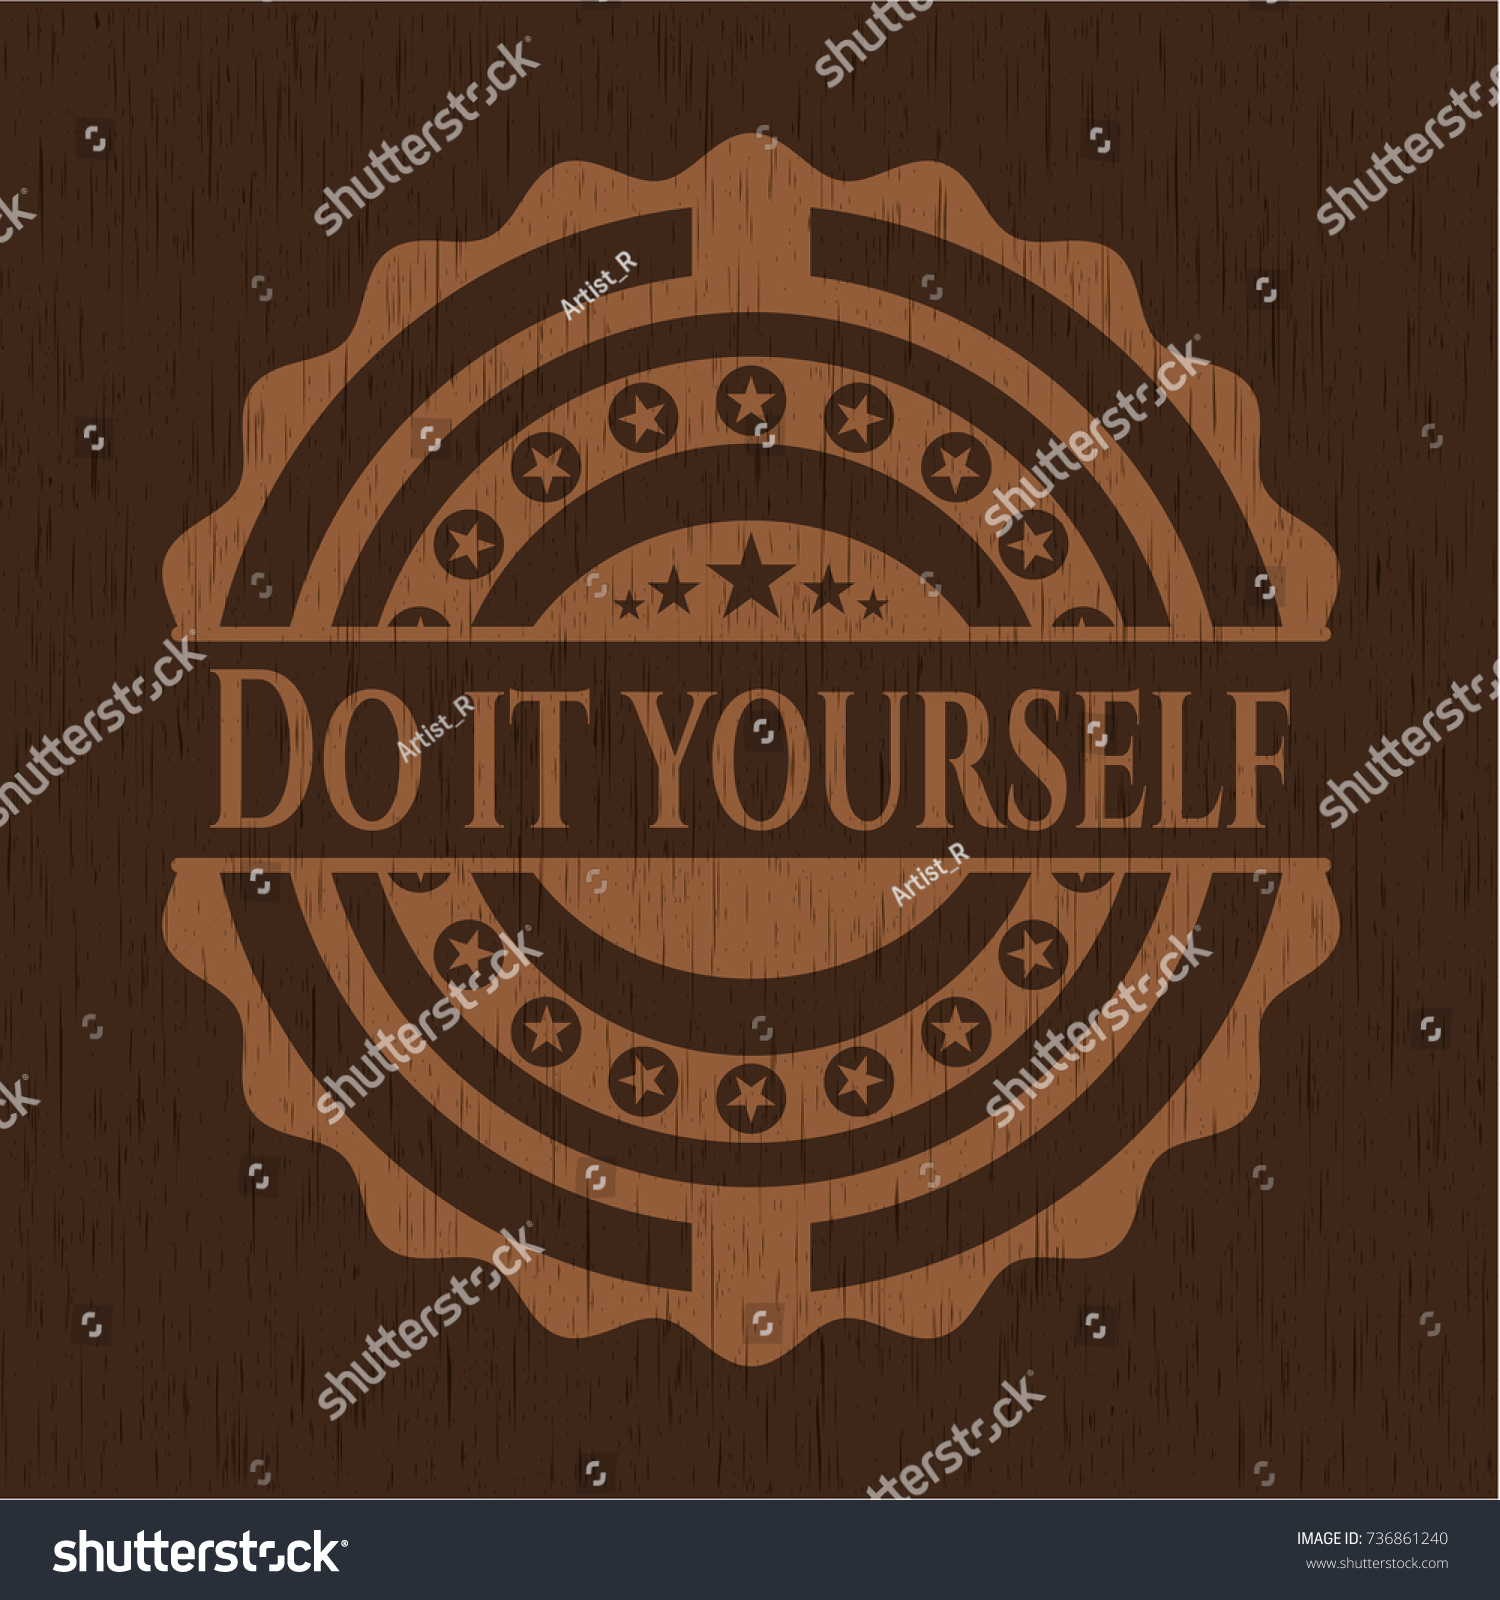 Do yourself badge wooden background stock vector 736861240 do it yourself badge with wooden background solutioingenieria Image collections